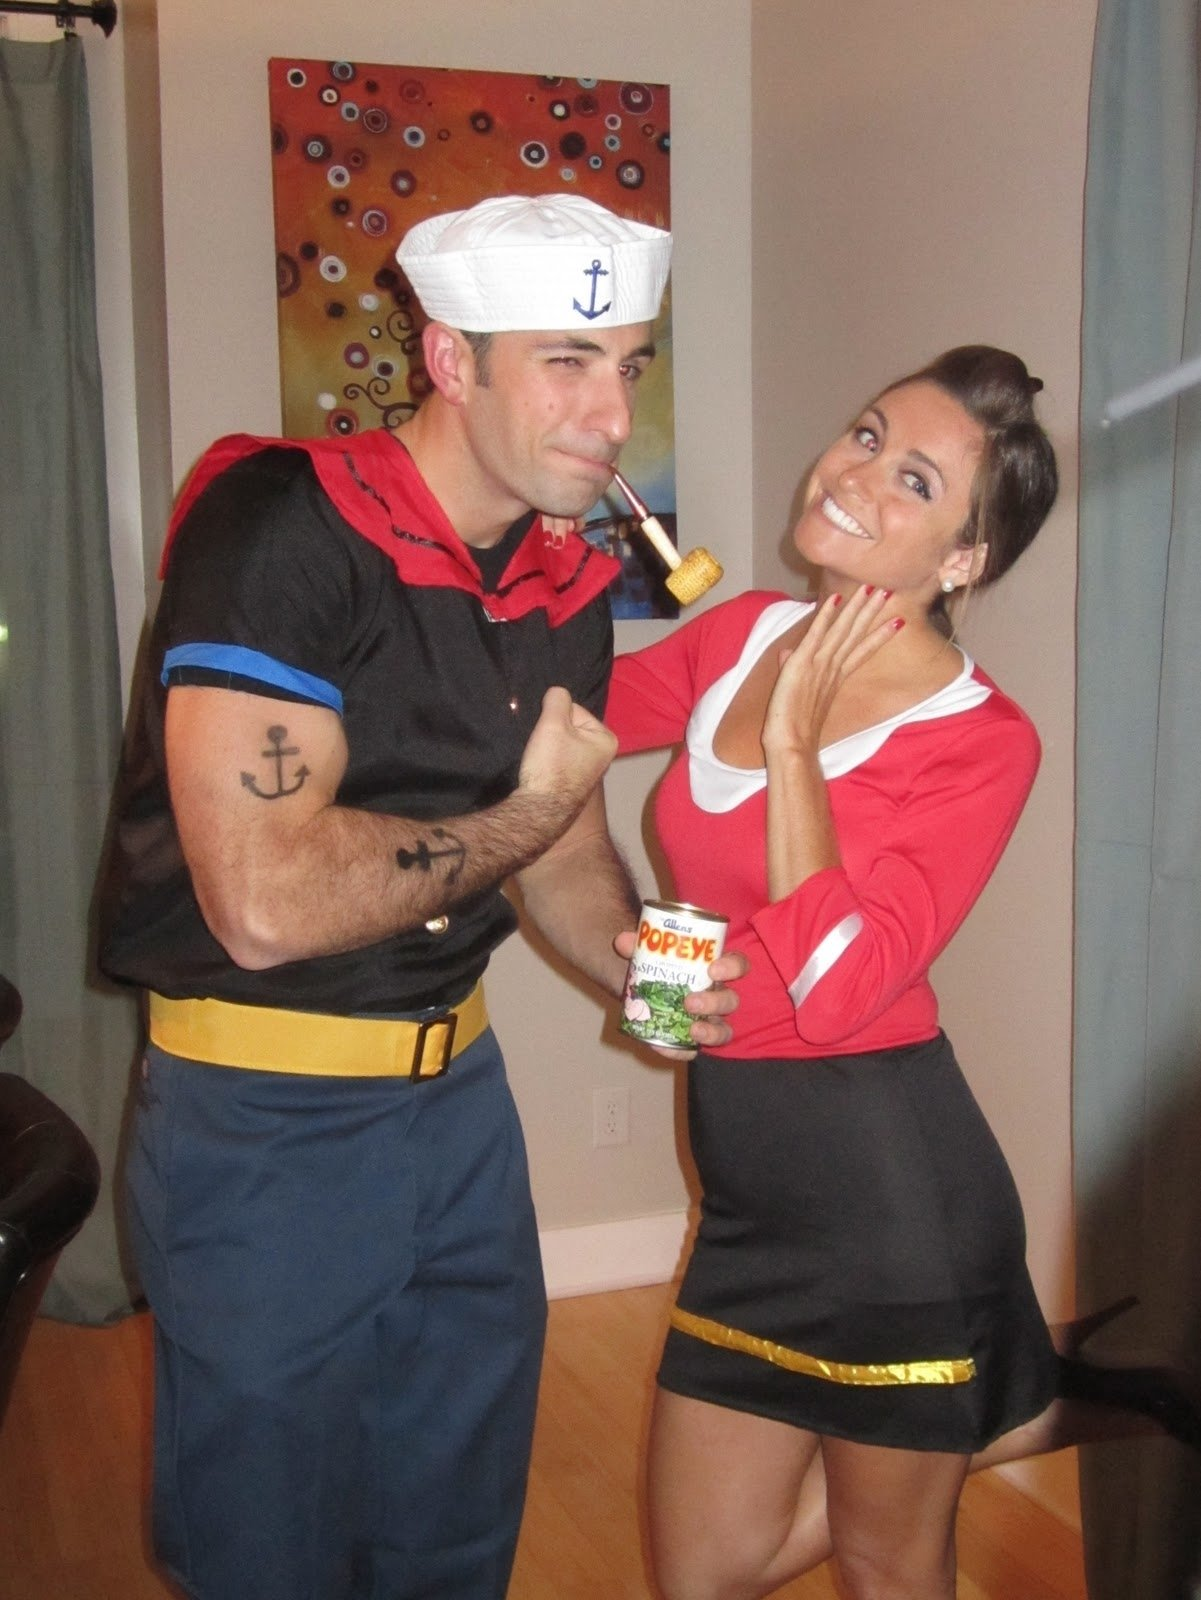 10 Stylish Halloween Costume Ideas For Couples 25 genius diy couples costumes brit co 8 2020